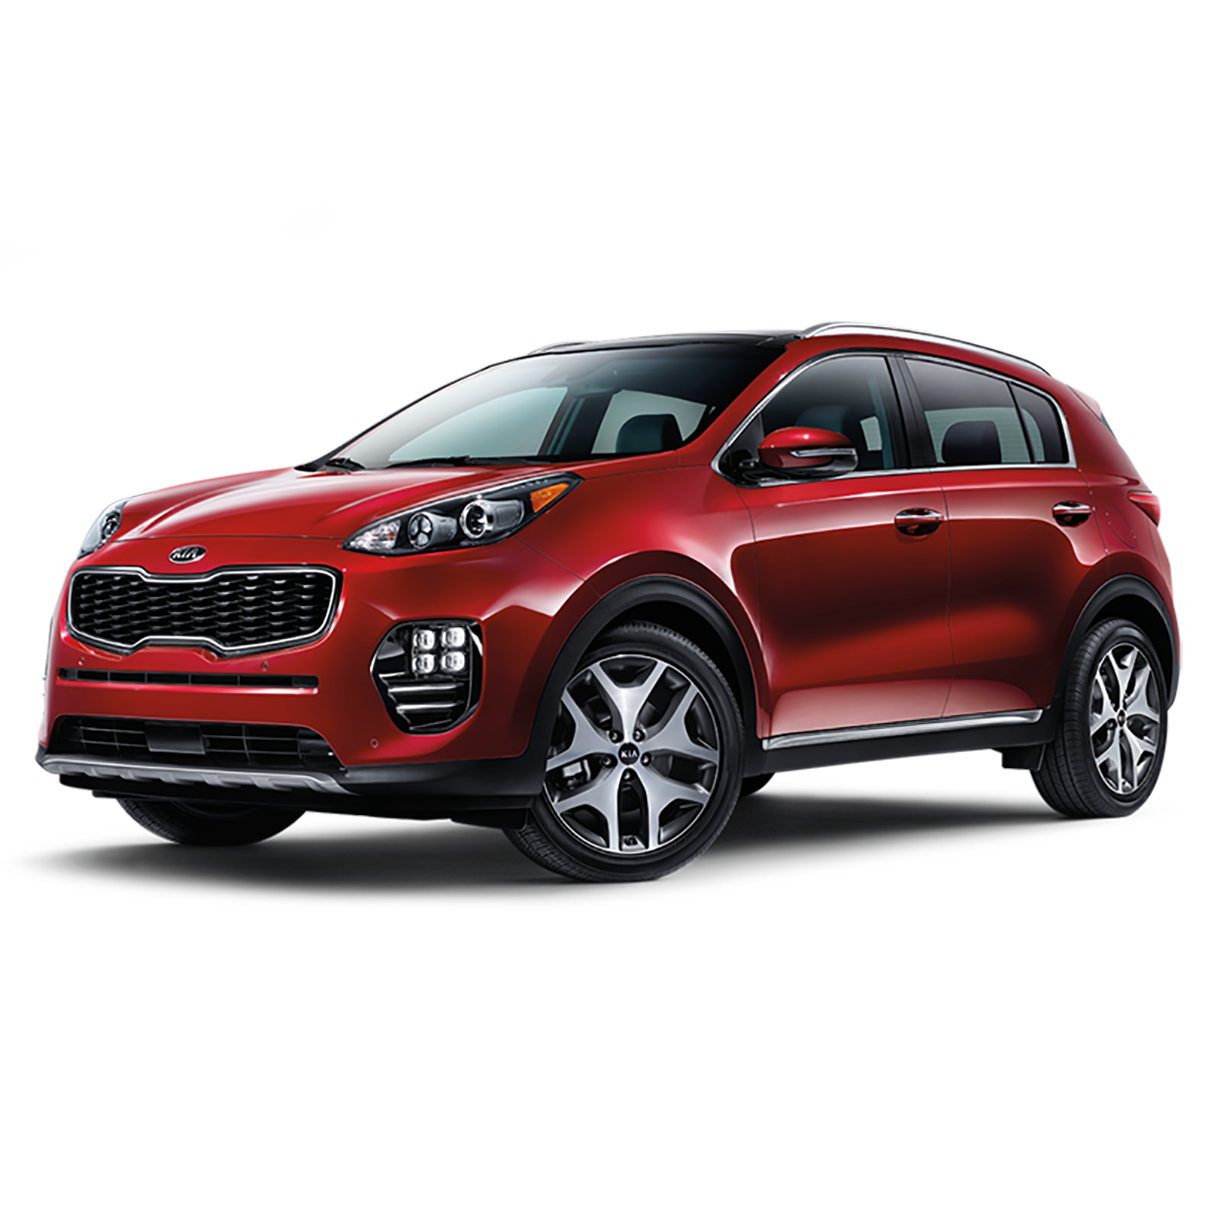 kia ahead lease price k pullaheadprogram pull offers program